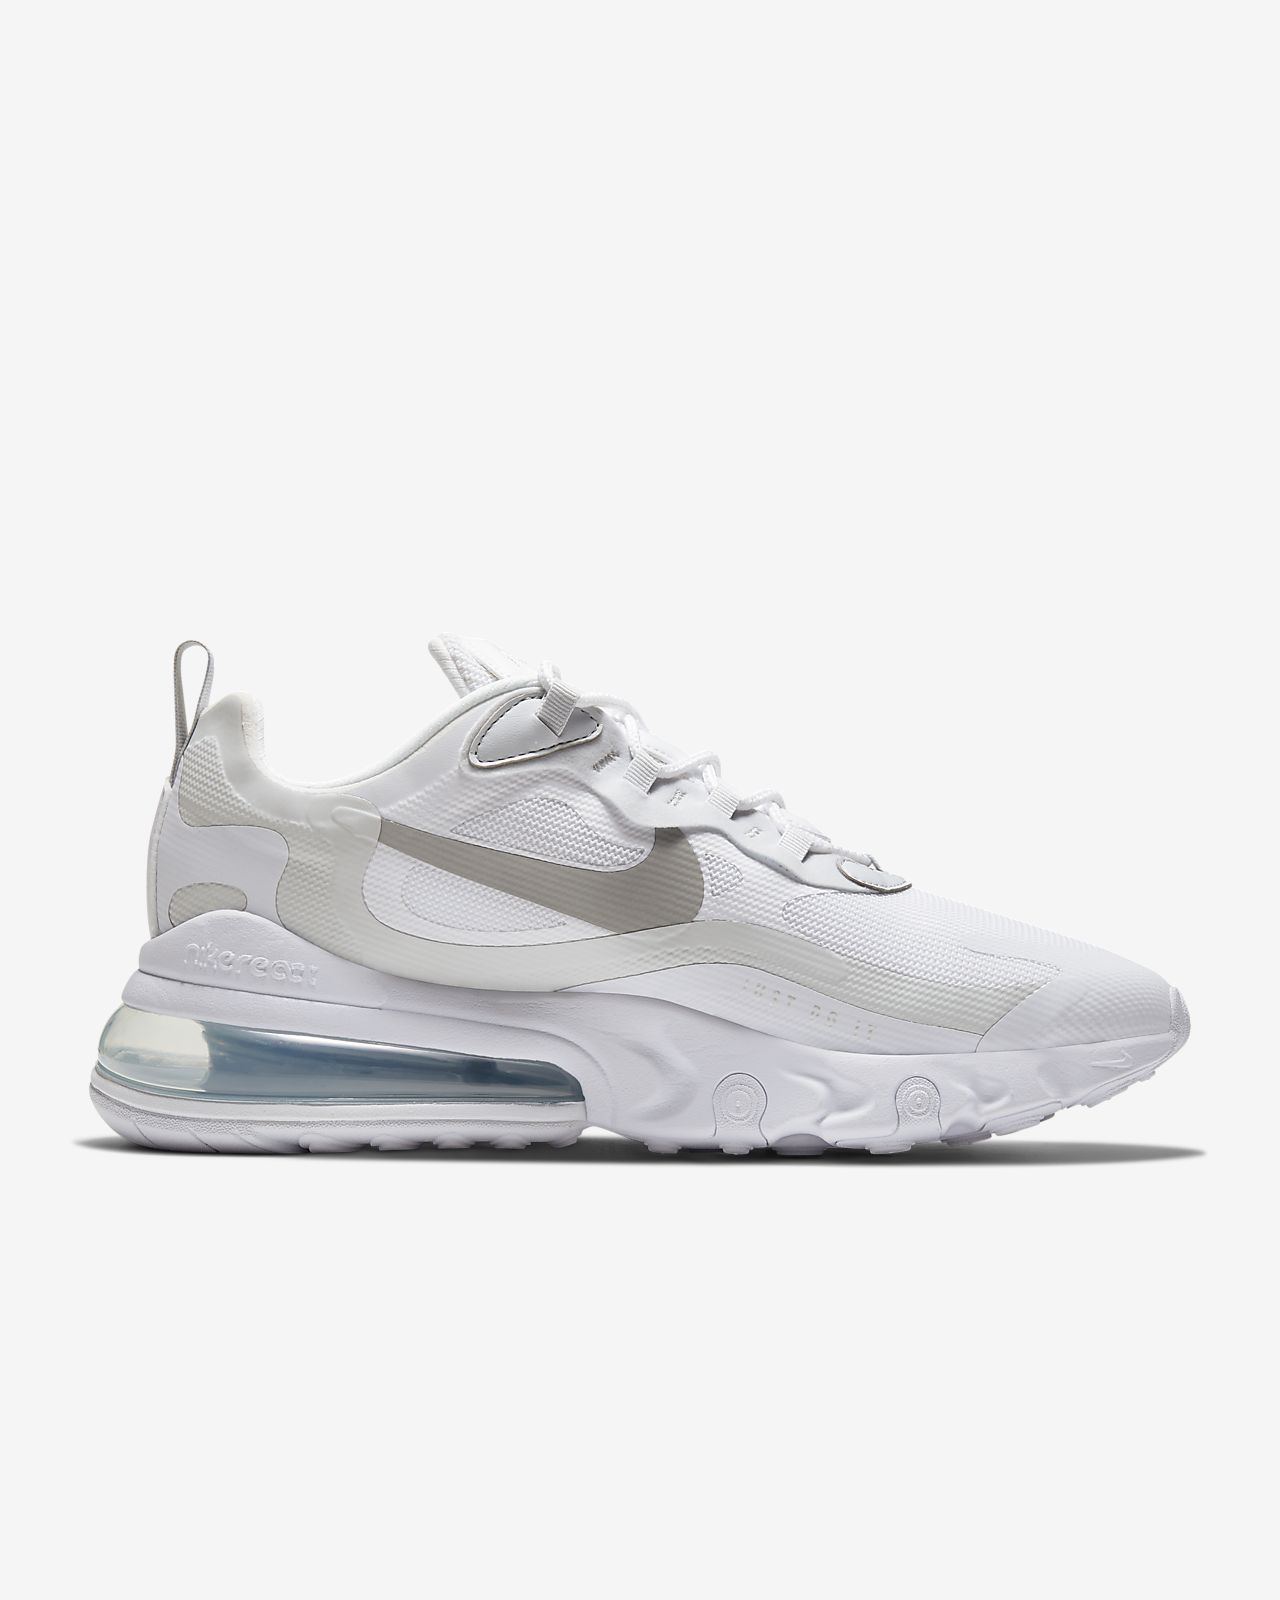 NIKE AIR MAX 270 REACET SNEAKERS WHITE SHOES